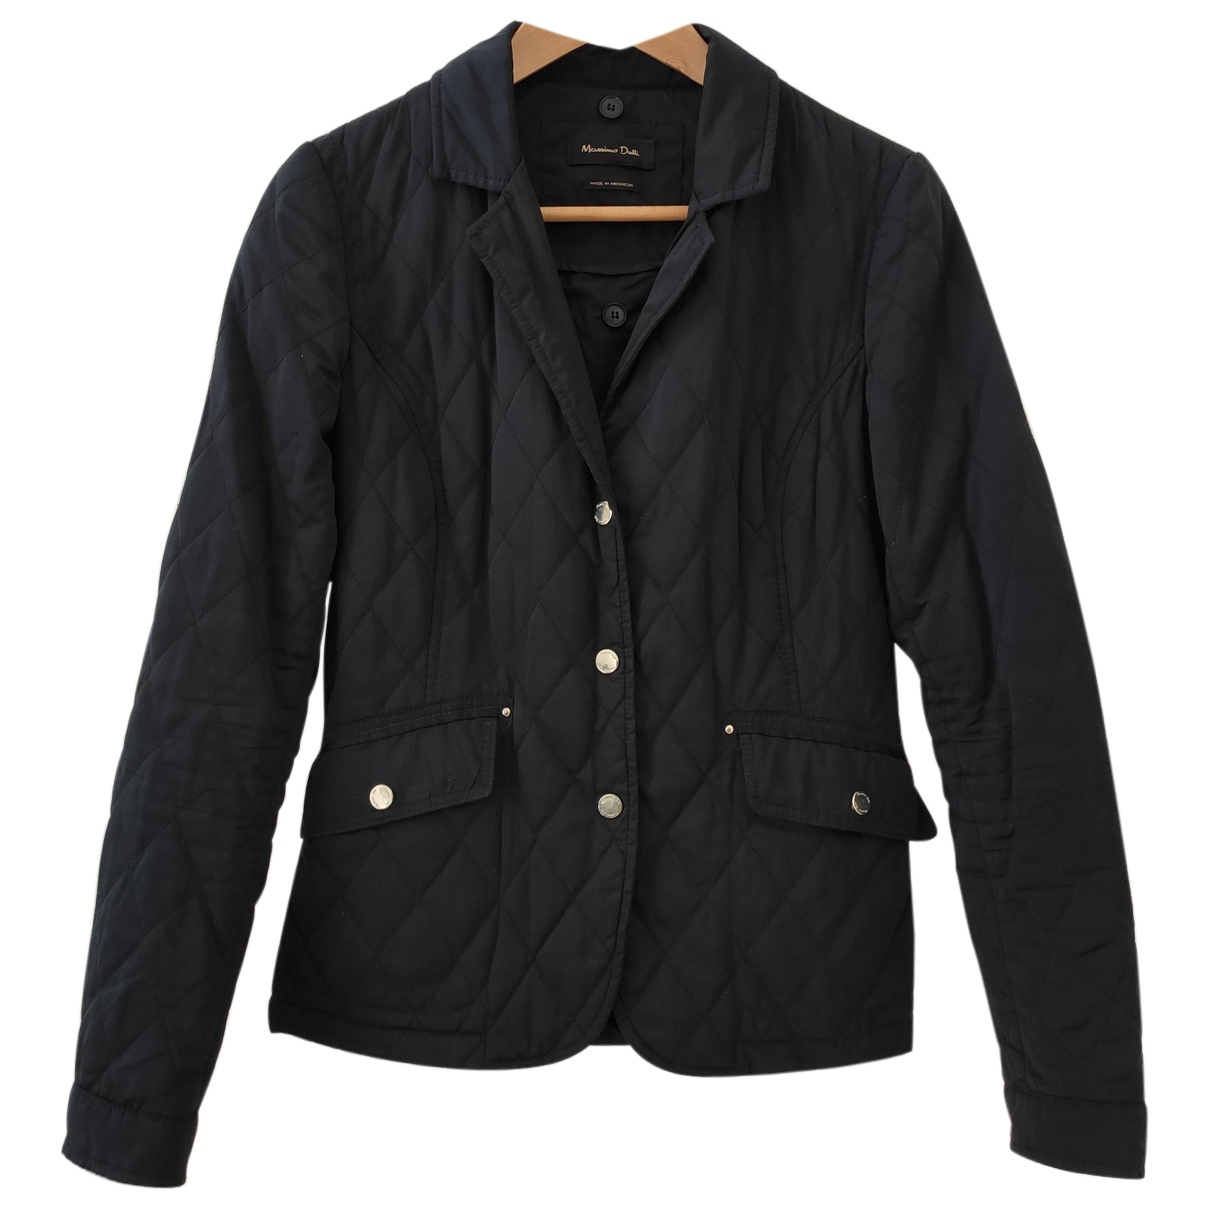 Massimo Dutti N Navy jacket for Women S International